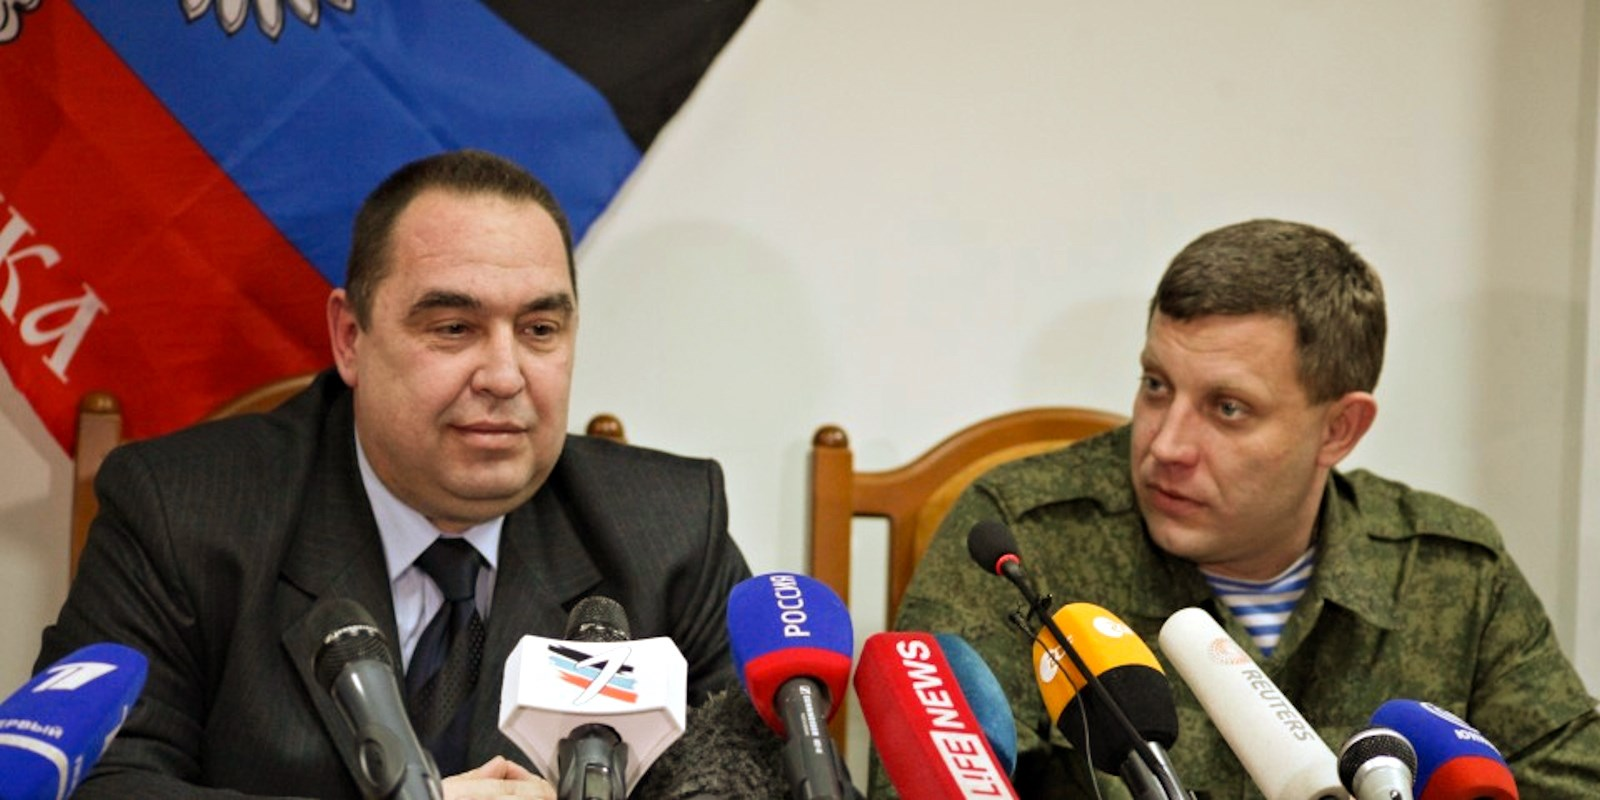 00 Zakharchenko and Plotnitsky. 04.04.15